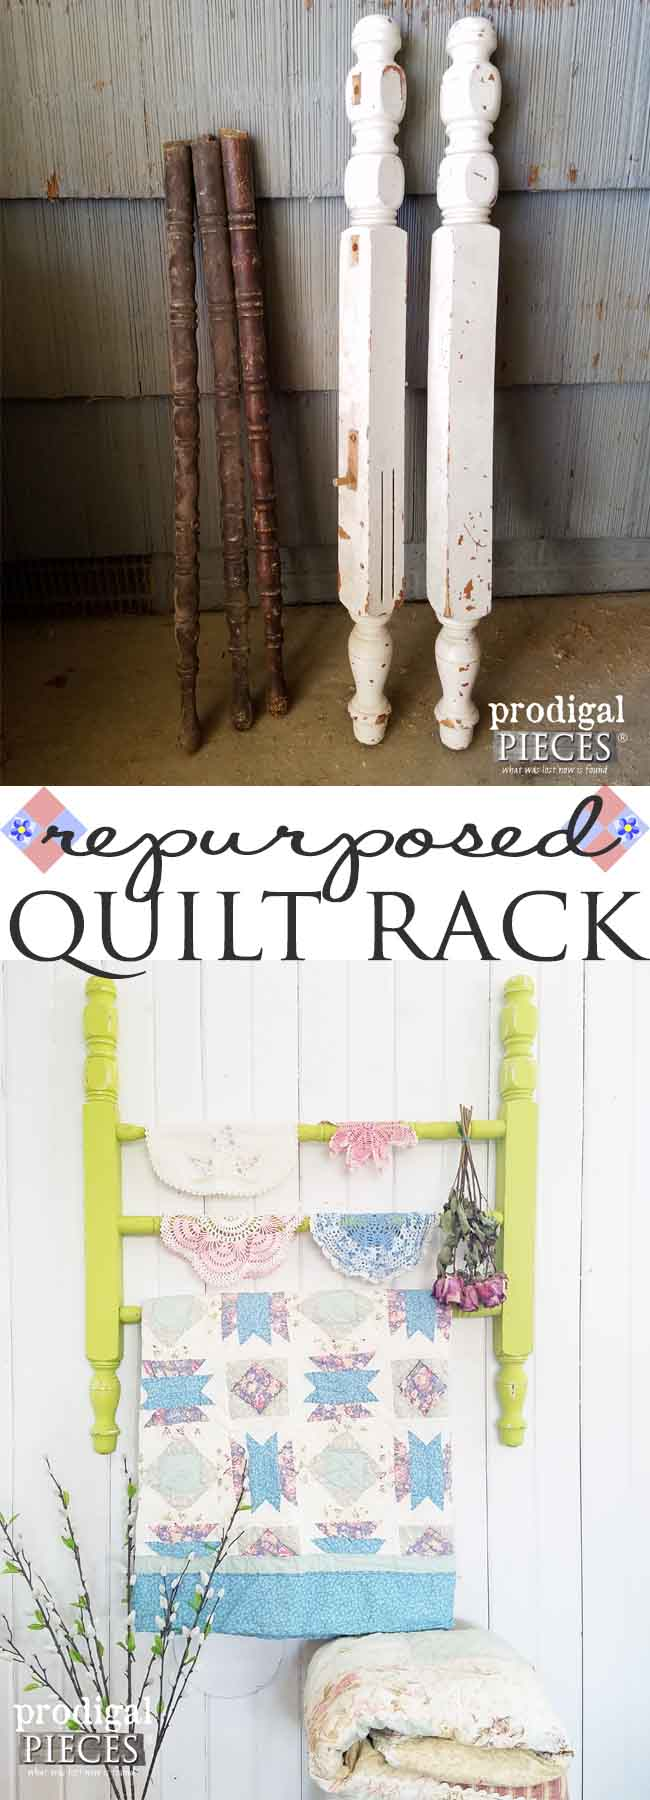 Top DIY Quilt Rack from Repurposed Parts - Prodigal Pieces TQ01